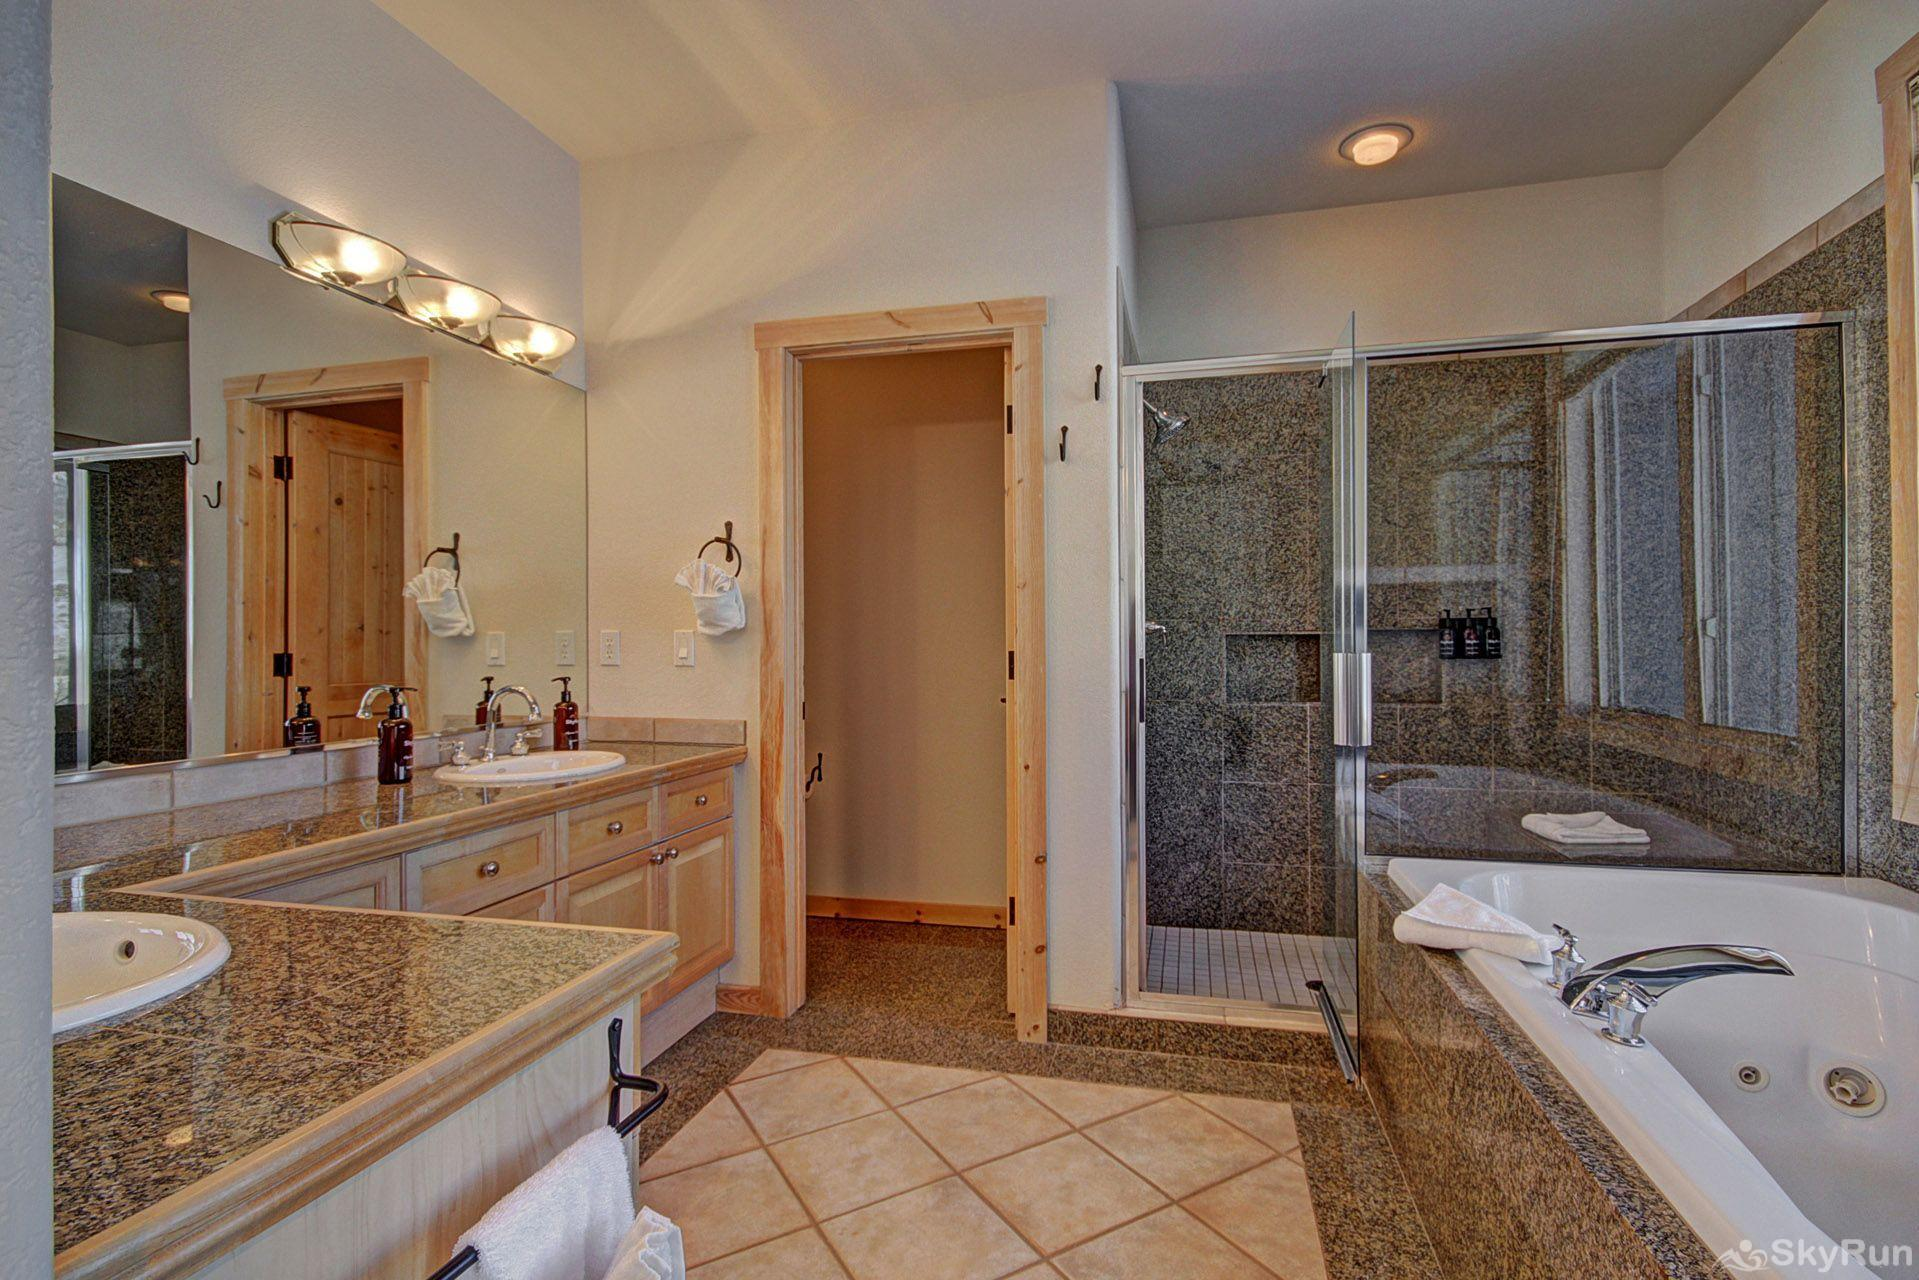 EN402 Ranch at Eagles Nest 3BR 4BA Large Master Bathroom